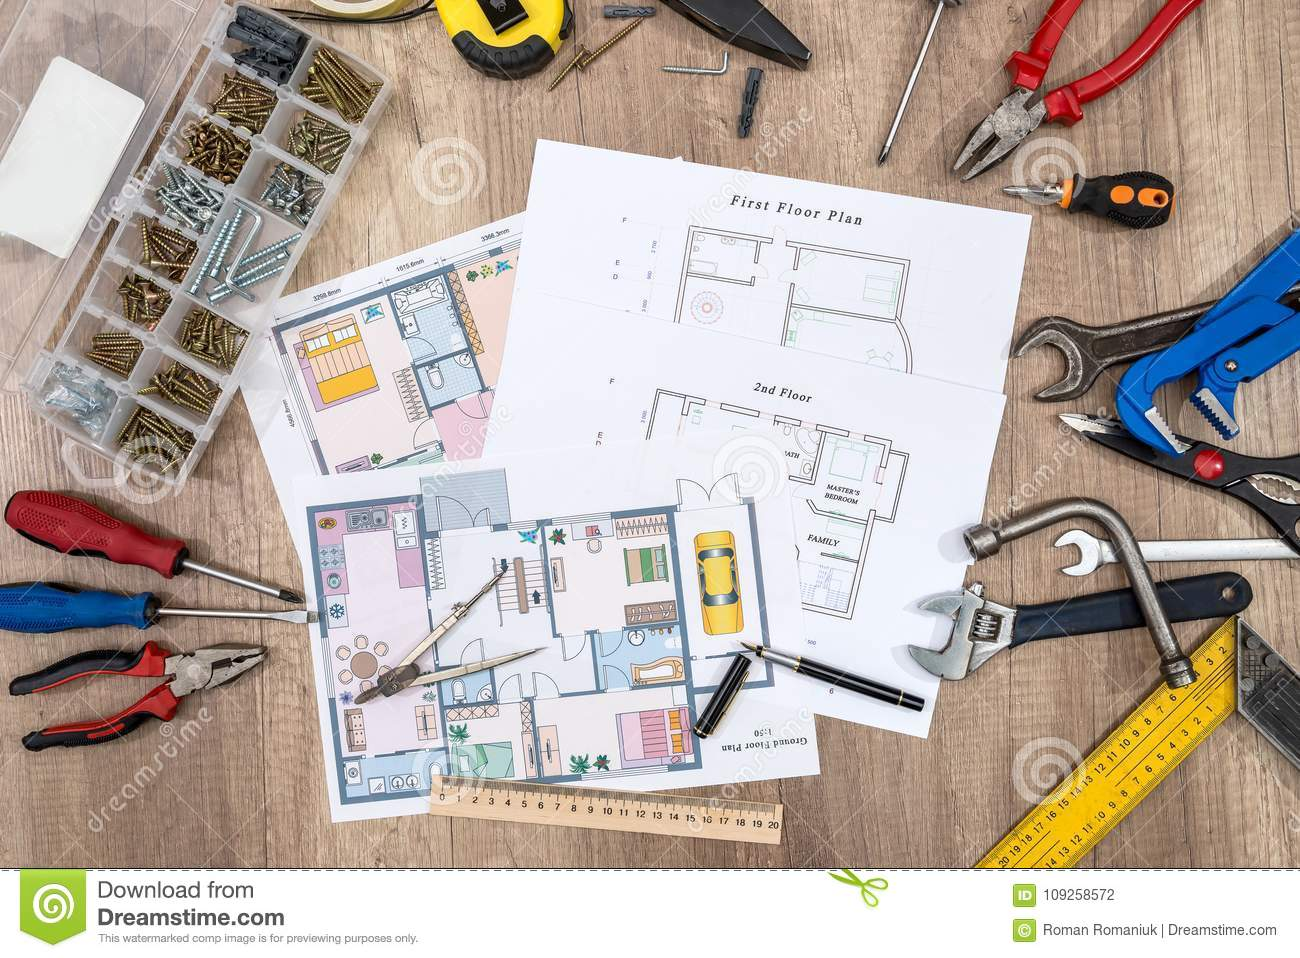 Charming Download Construction Plans With Drawing Tools Stock Photo   Image Of  Apartment, Architectural: 109258572